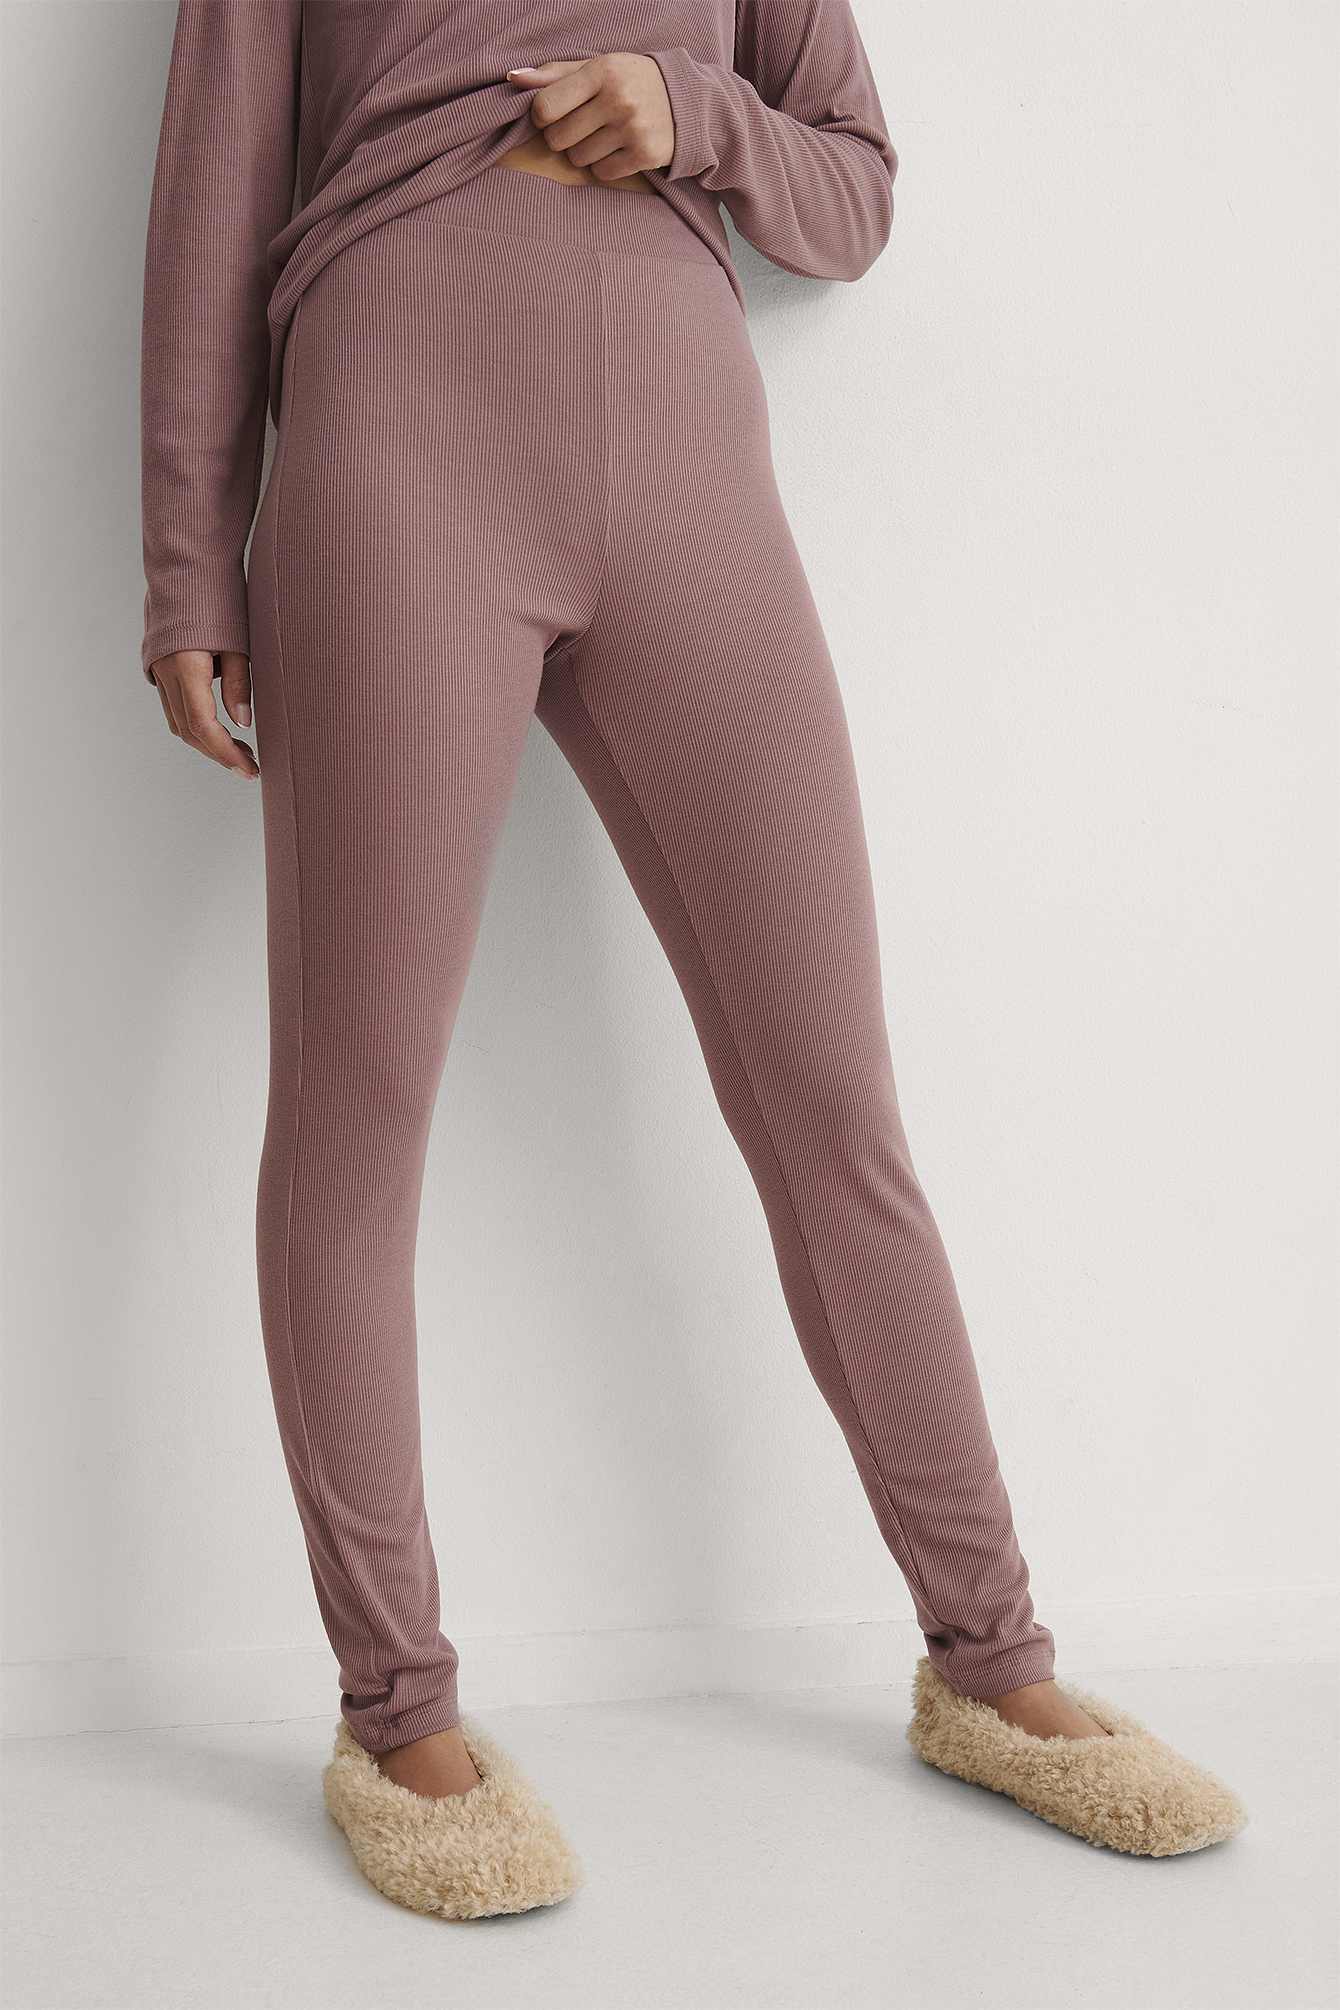 Rose Taupe Recycled Soft Ribbed High Waist Tights